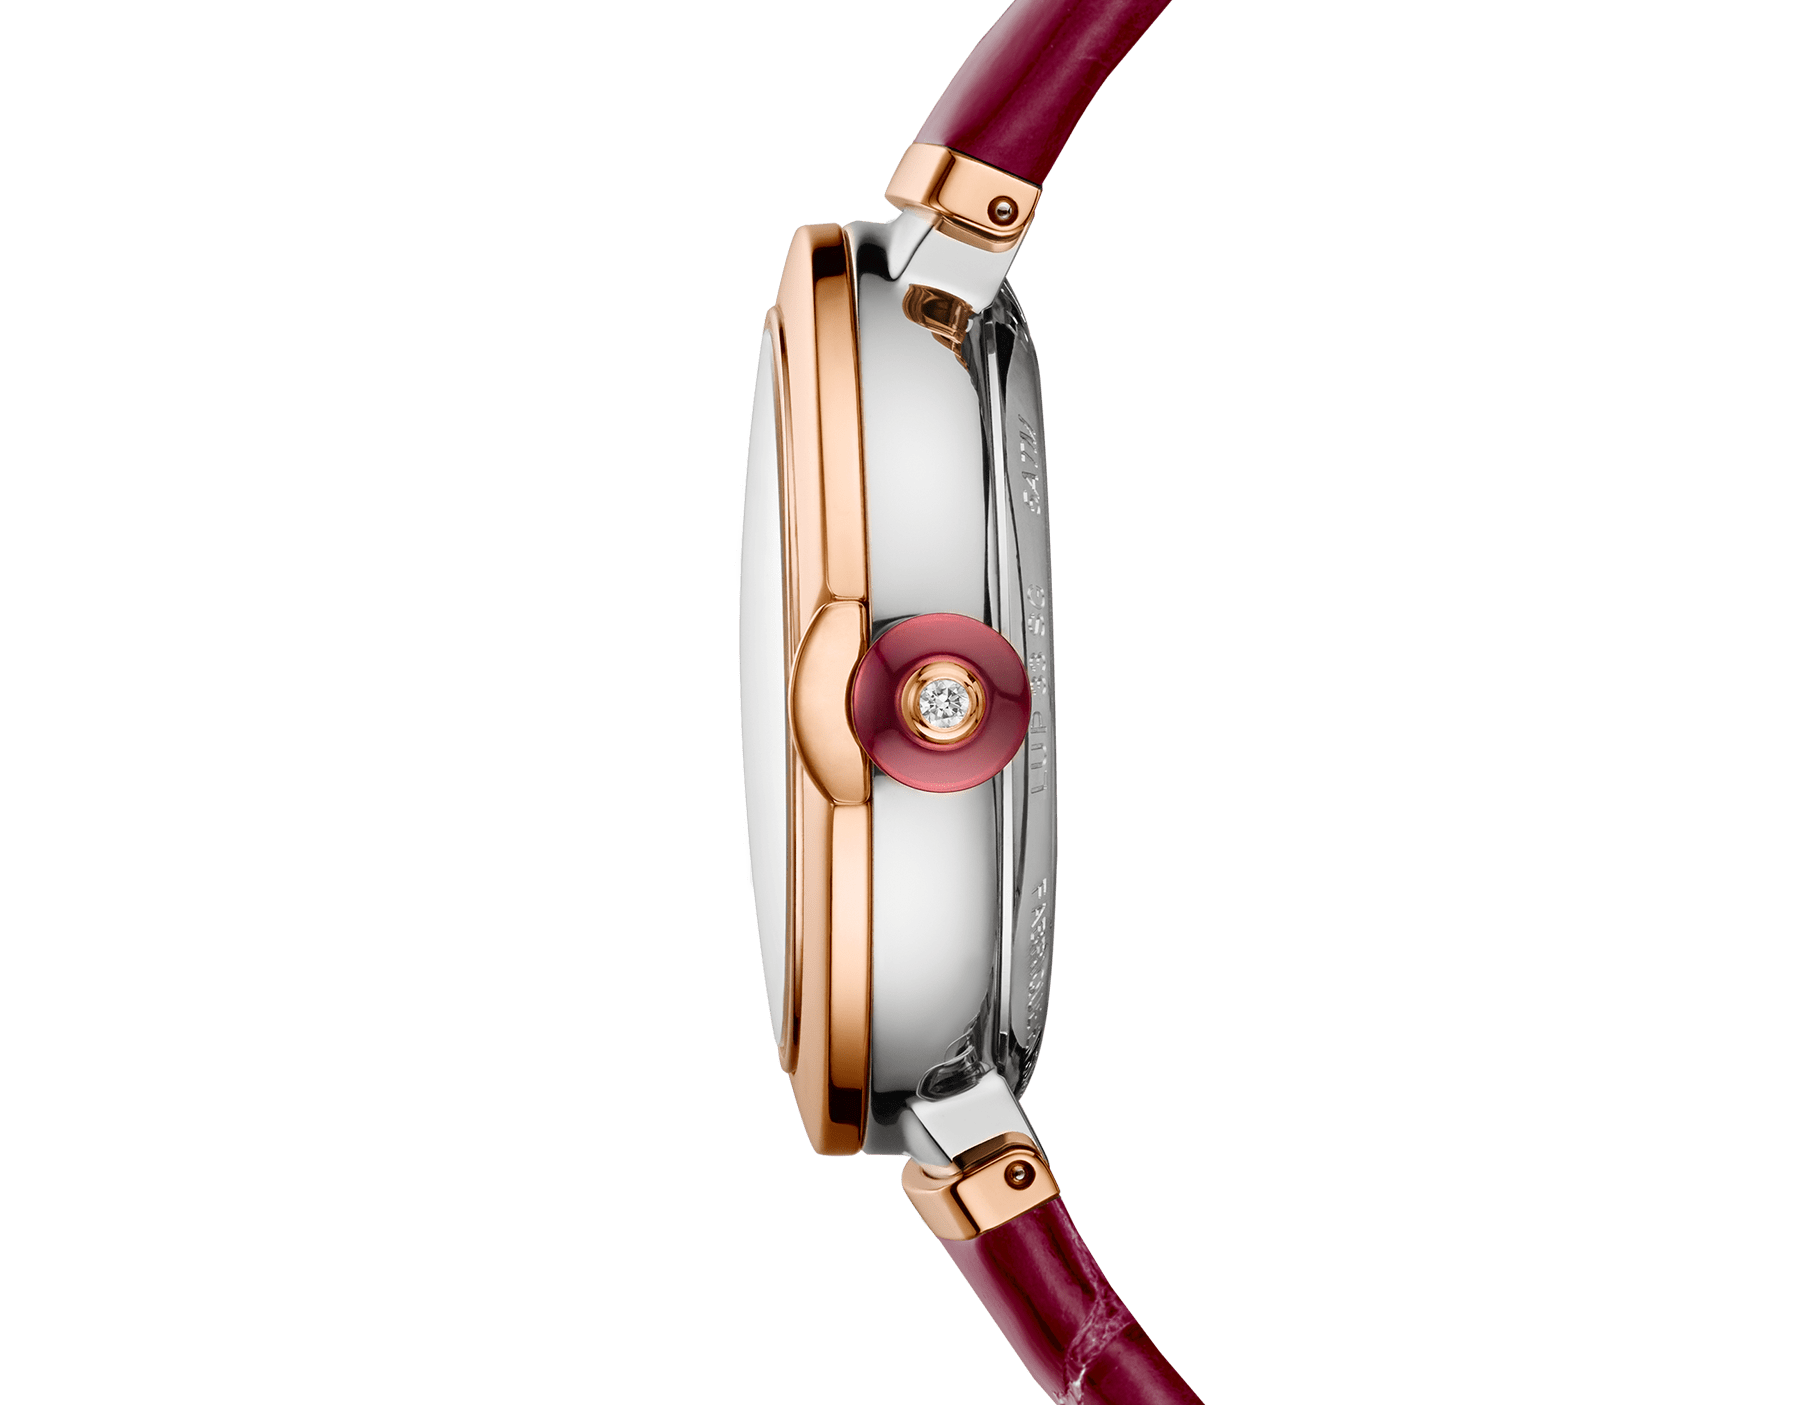 LVCEA watch with 18 kt rose gold and stainless steel case, white mother-of-pearl dial set with diamond indexes, date aperture and burgundy alligator bracelet. 102639 image 2